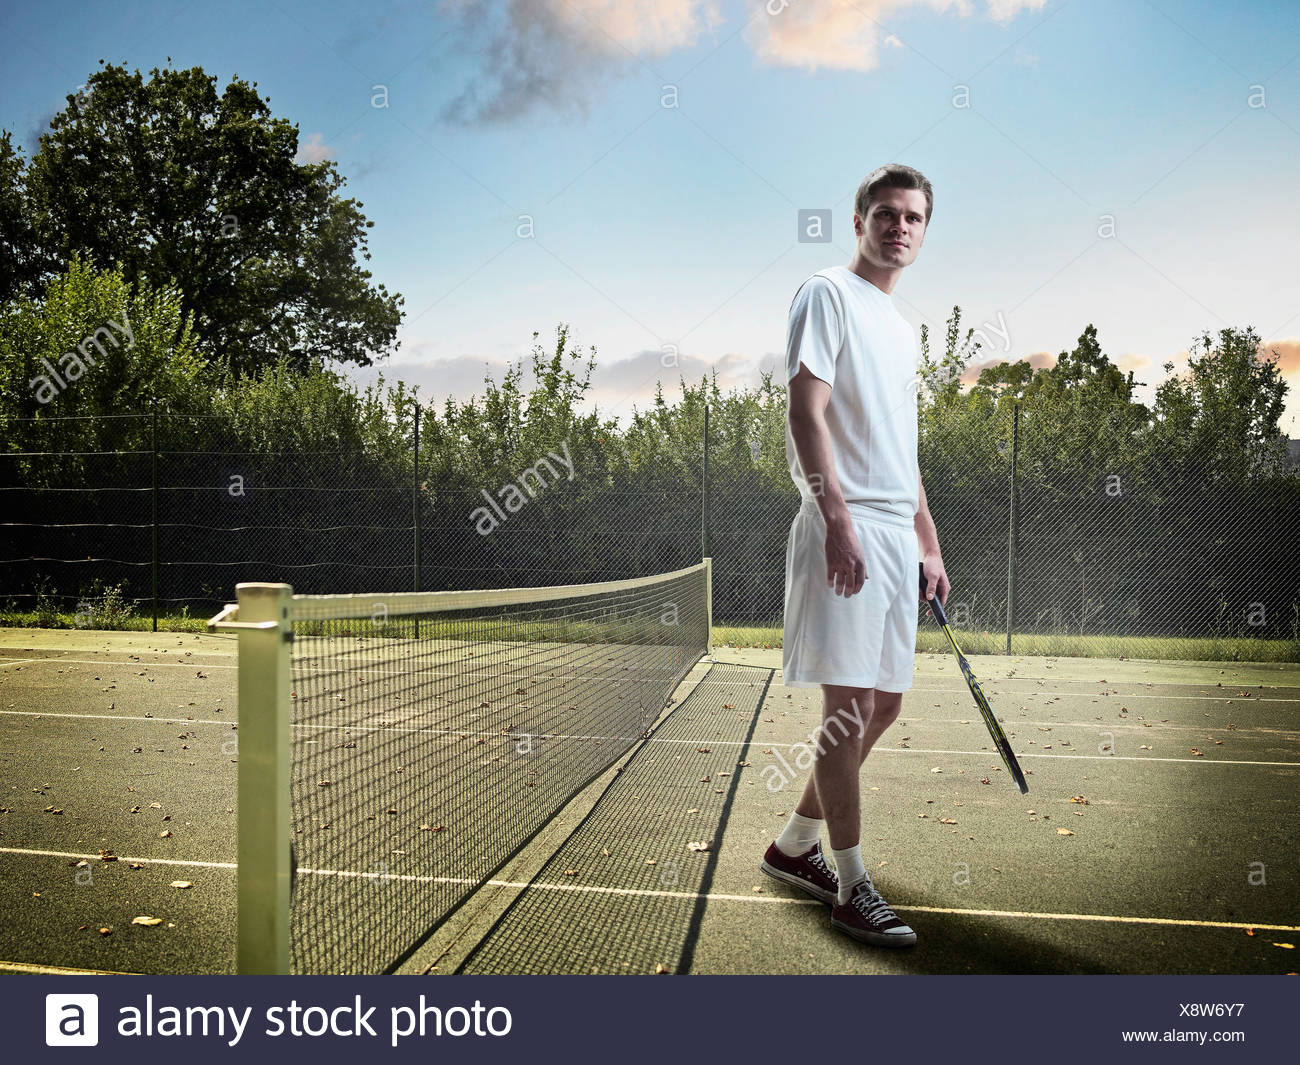 Homme debout sur un court de tennis Photo Stock